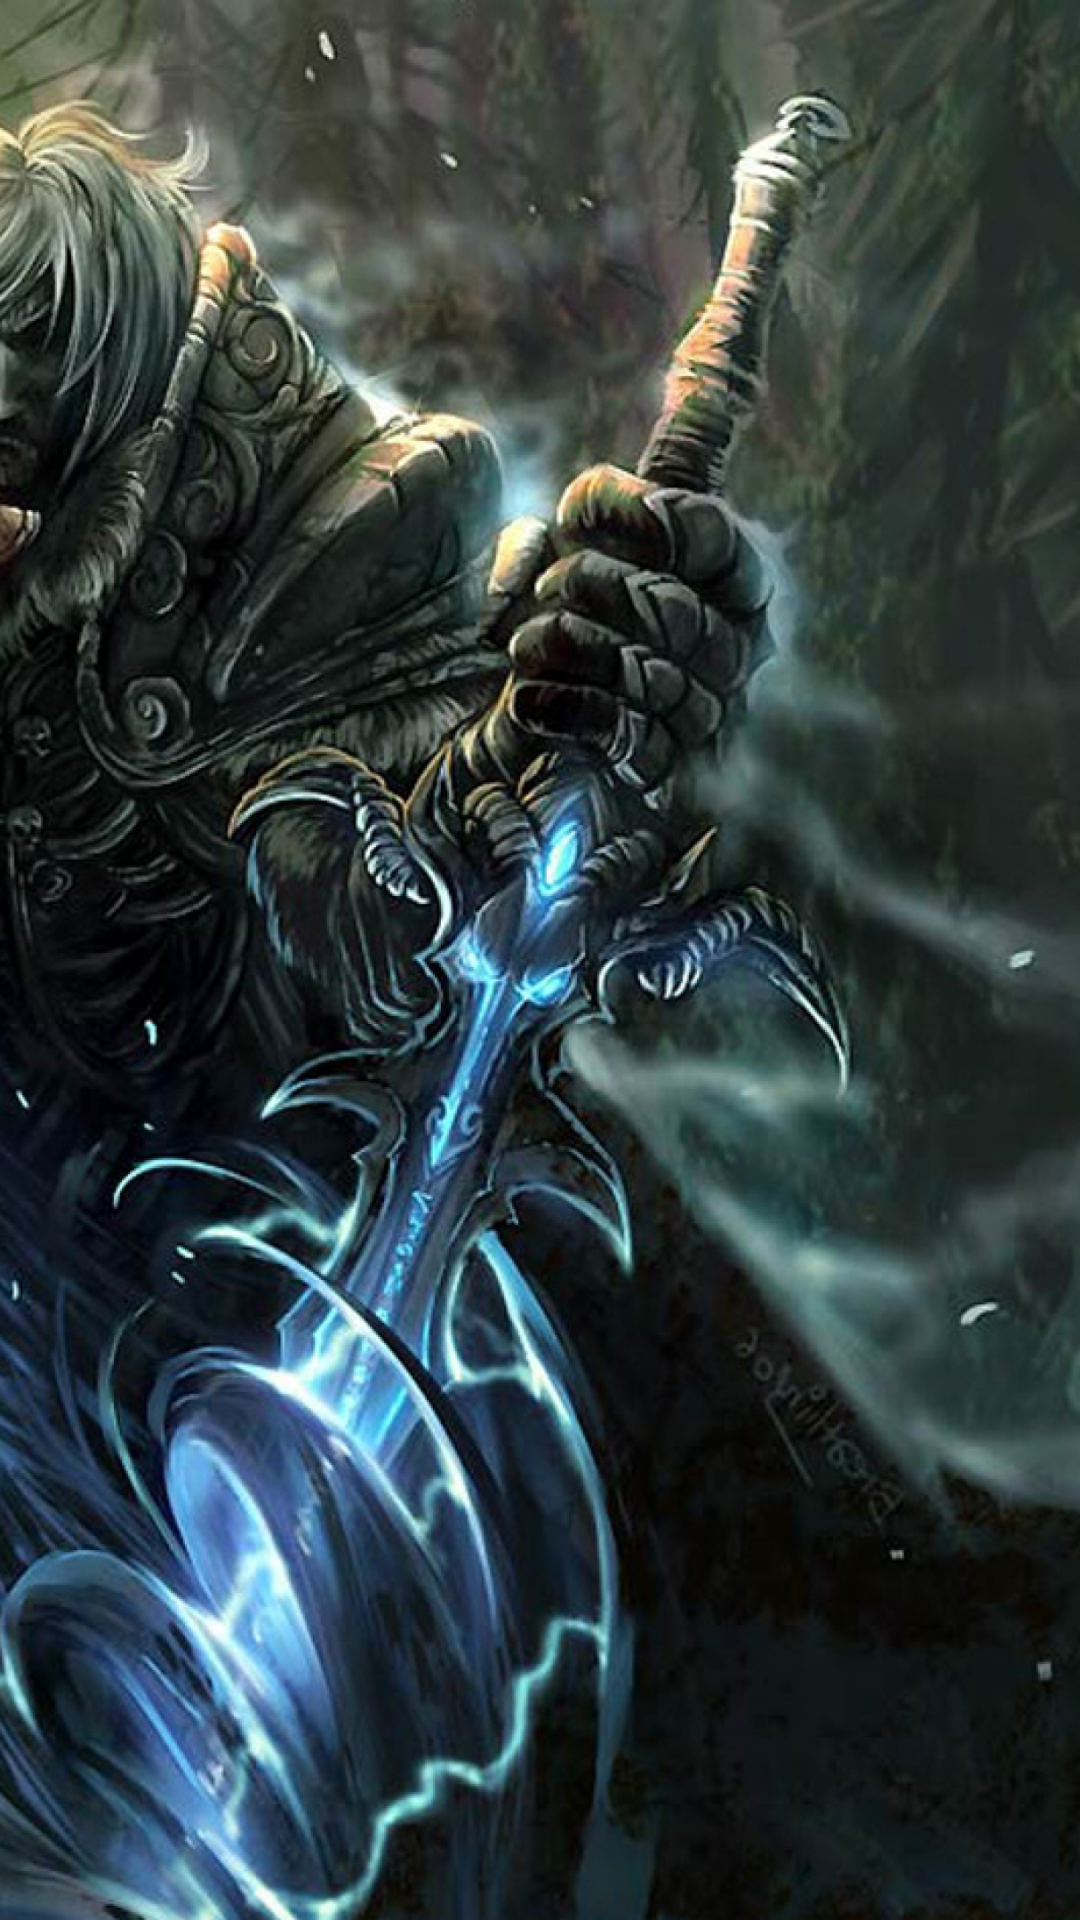 Free Download Download Wallpaper 3840x2160 World Of Warcraft